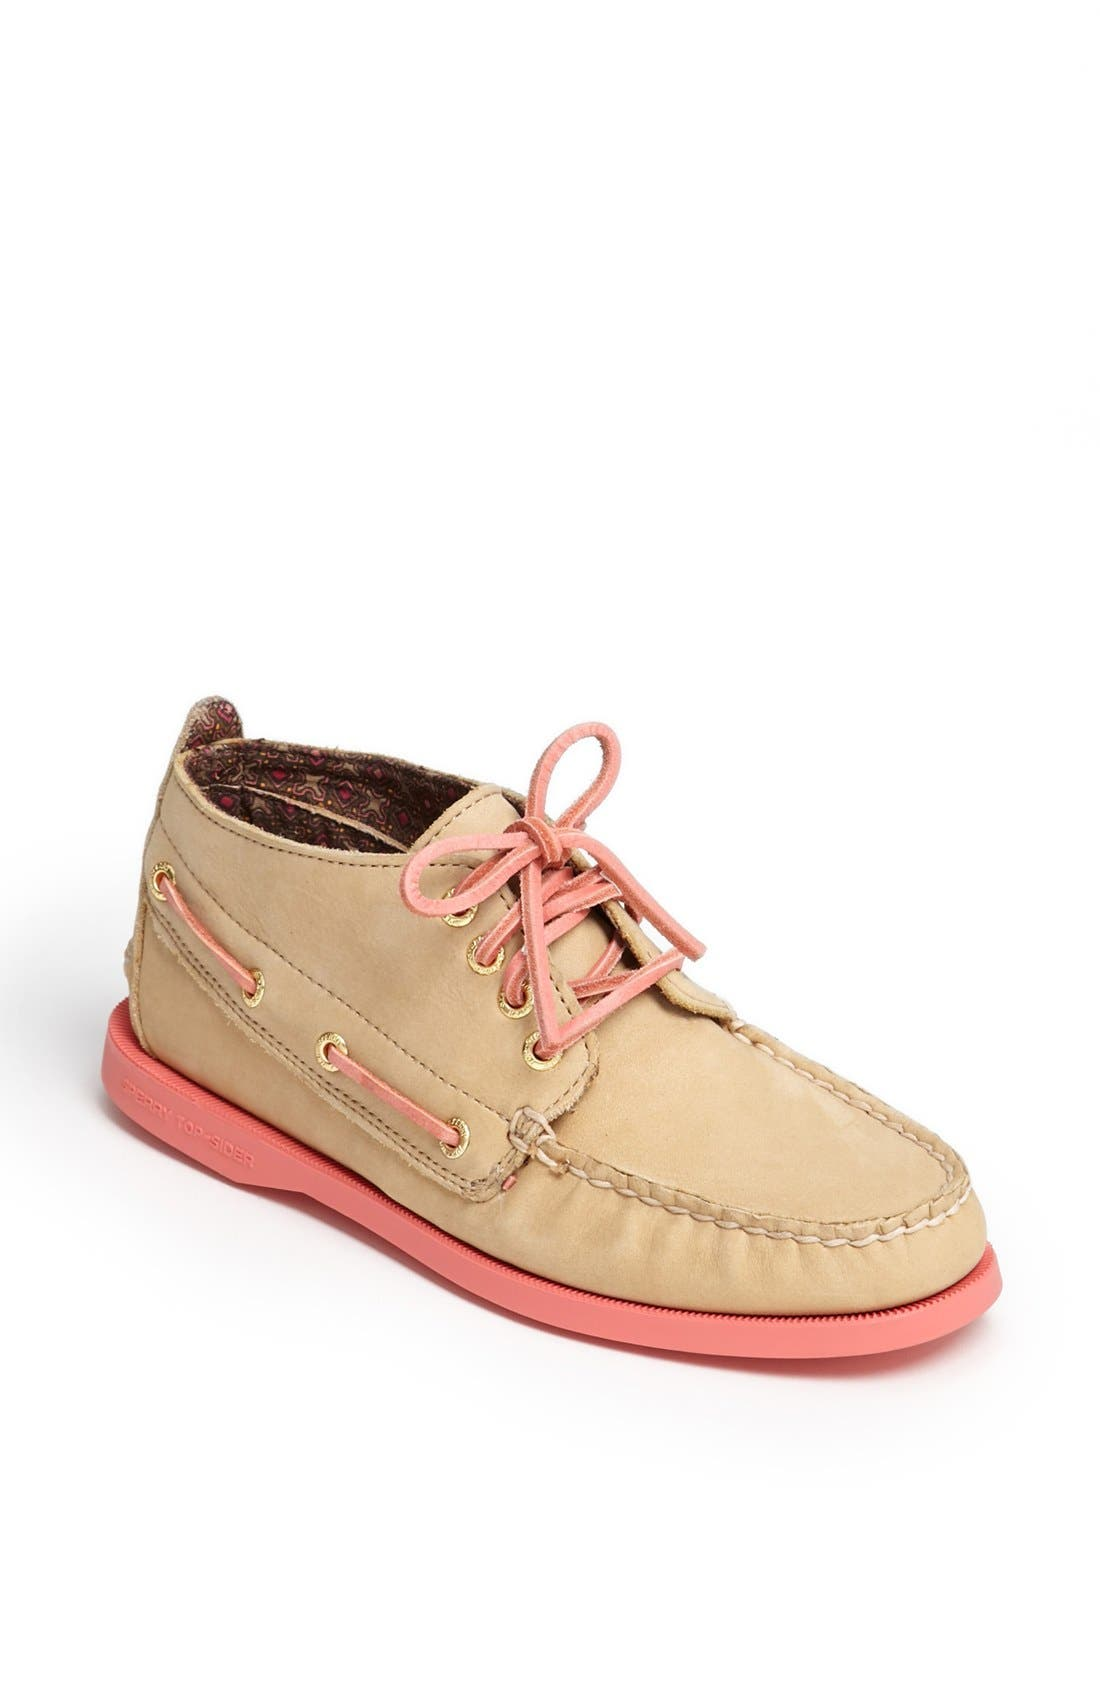 Alternate Image 1 Selected - Sperry Top-Sider® 'Baystar' Chukka Boot (Women)